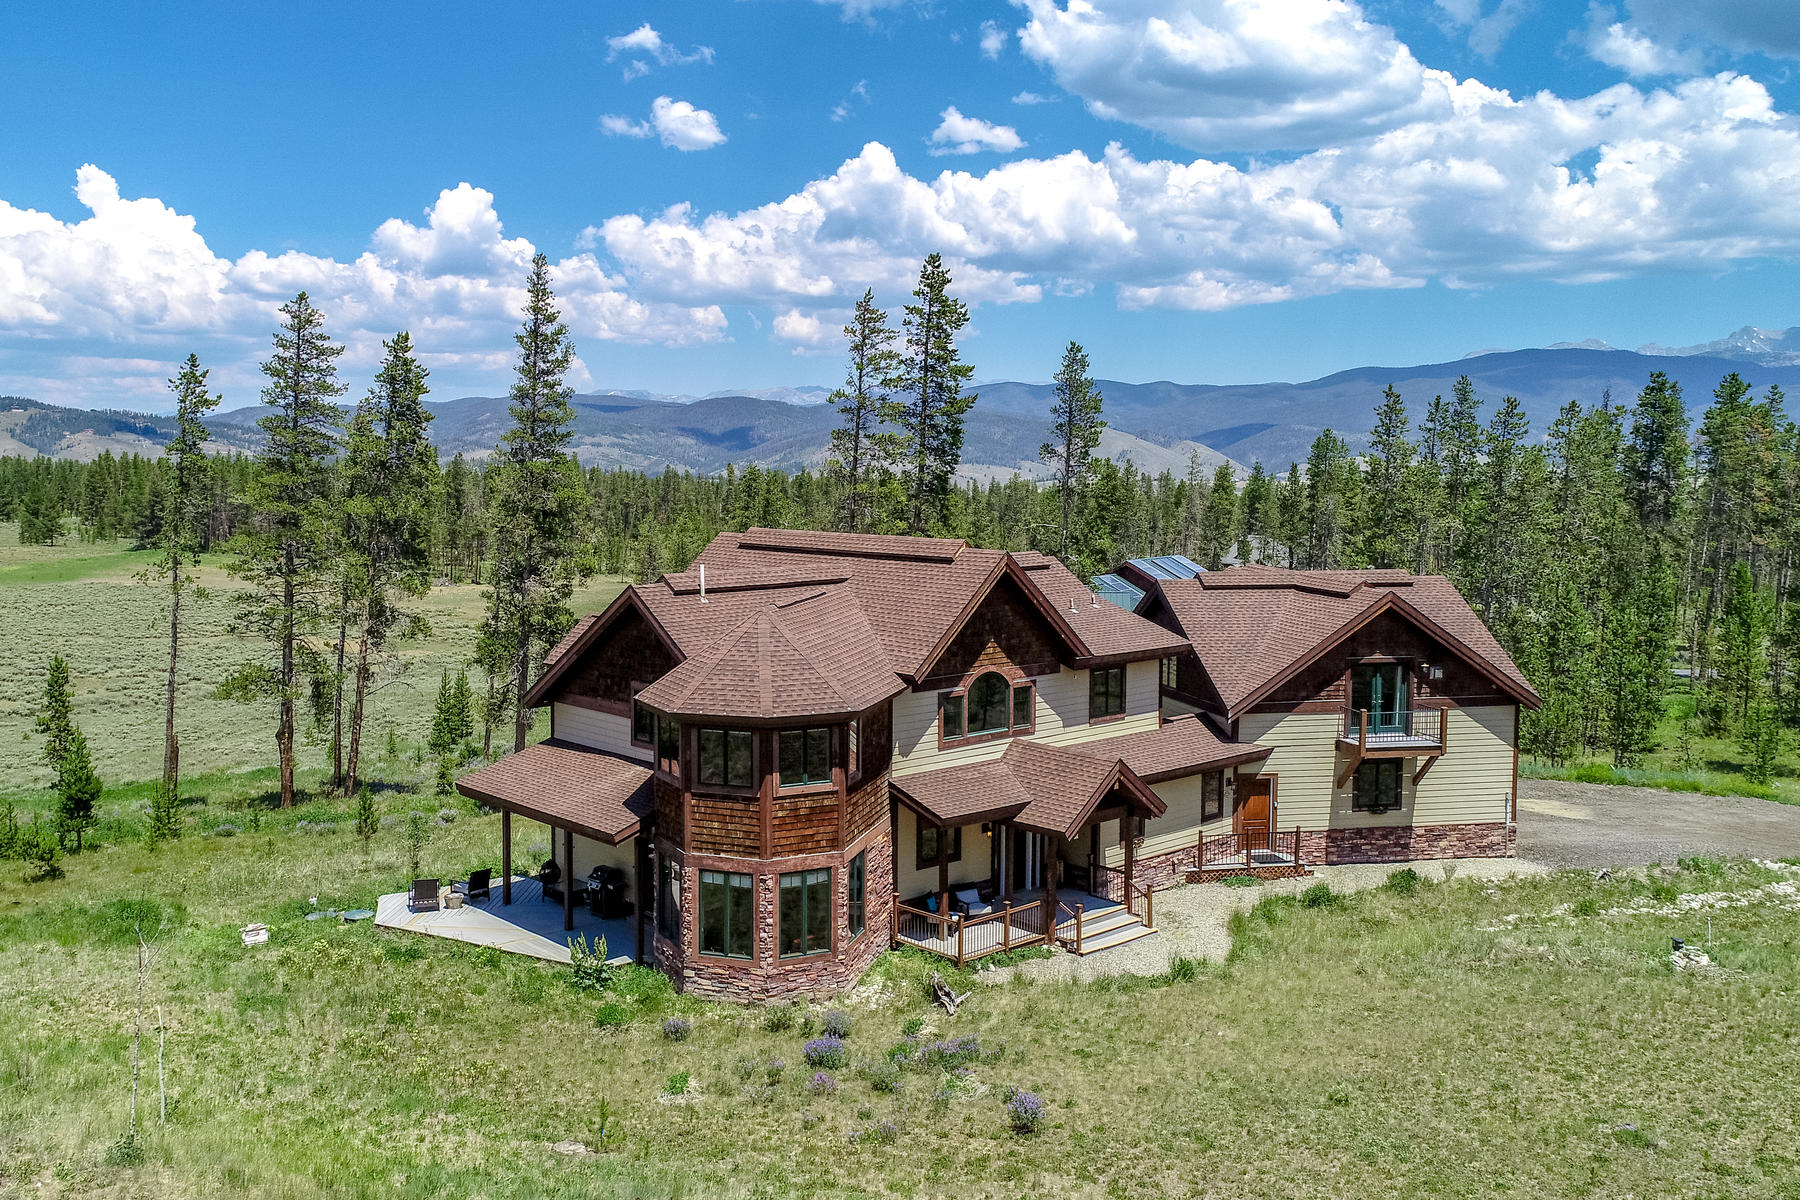 Casa Unifamiliar por un Venta en Great location in desirable Stagecoach Meadows on 2.41 acres 642 Counry Road 5171/Stagecoach Dr Fraser, Colorado 80442 Estados Unidos